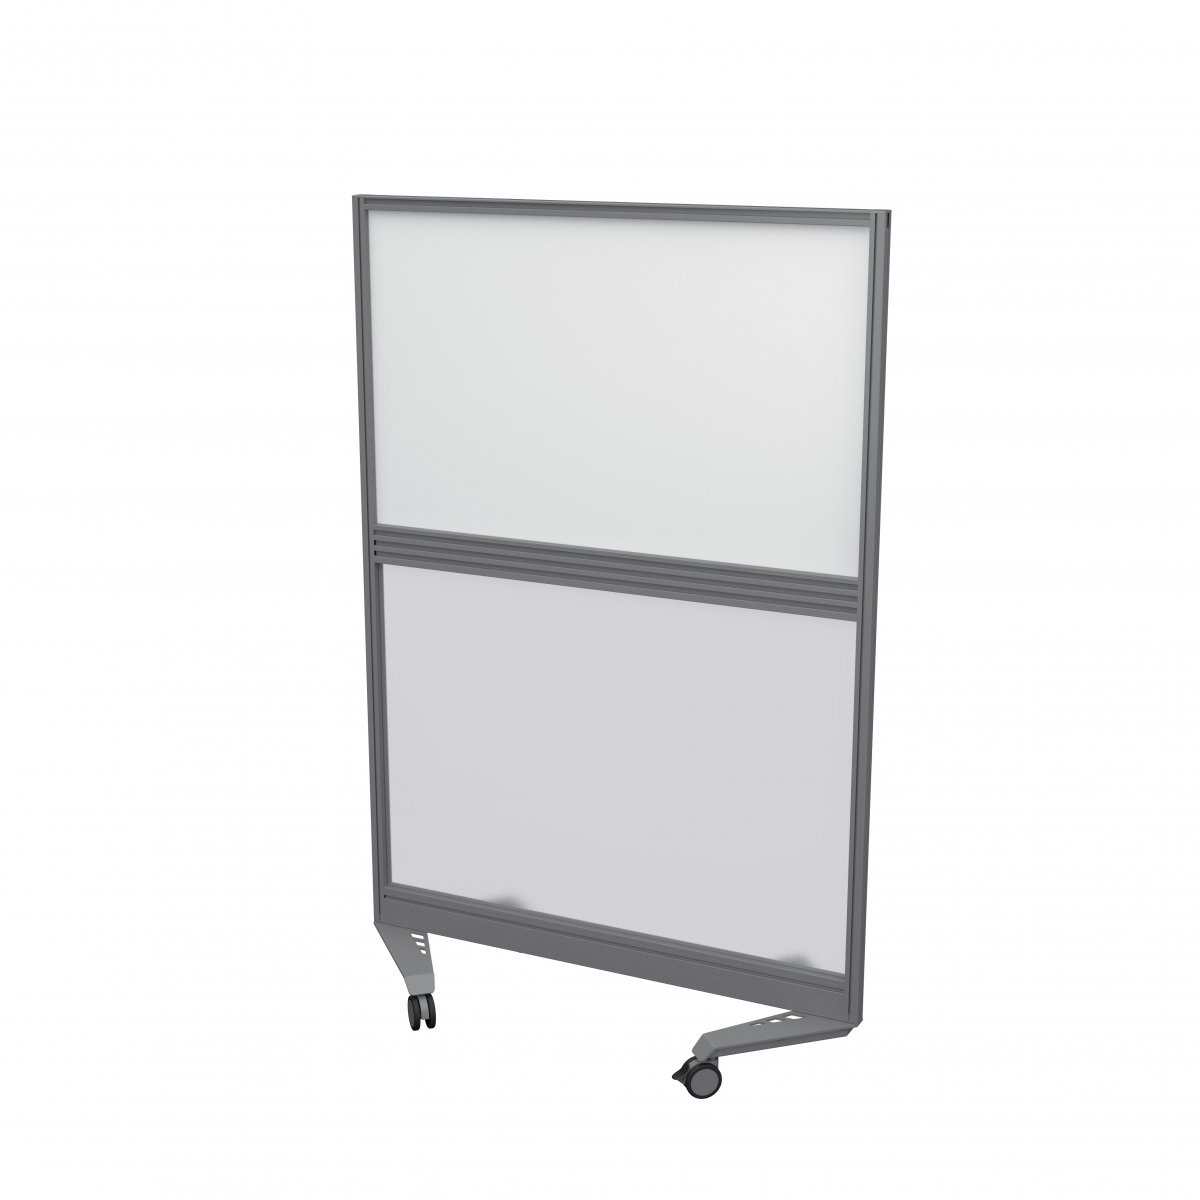 Mobile Type 4 Fully Glazed Screen Silver Frame - 800W X 1500H Band 1